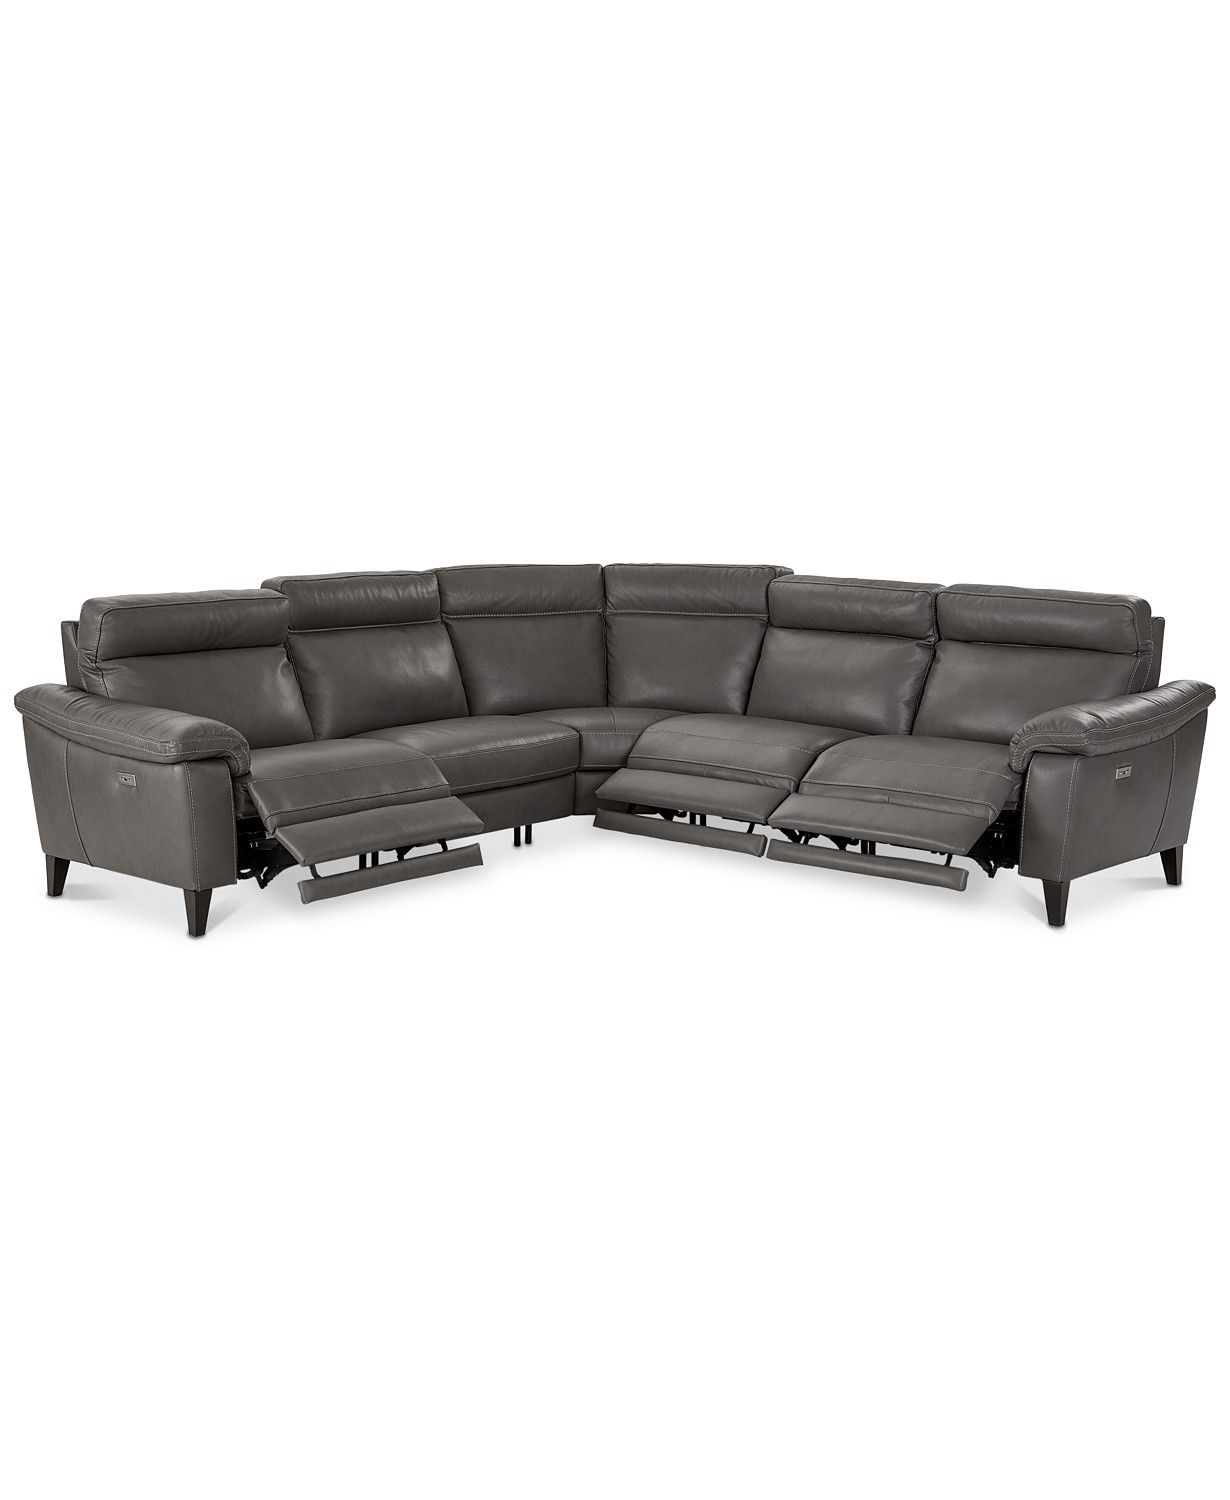 Closeout Pirello 5 Pc L Shaped Leather Sectional Sofa With 3 Recliners Headrests And Usb Port Created For Macy S Macys